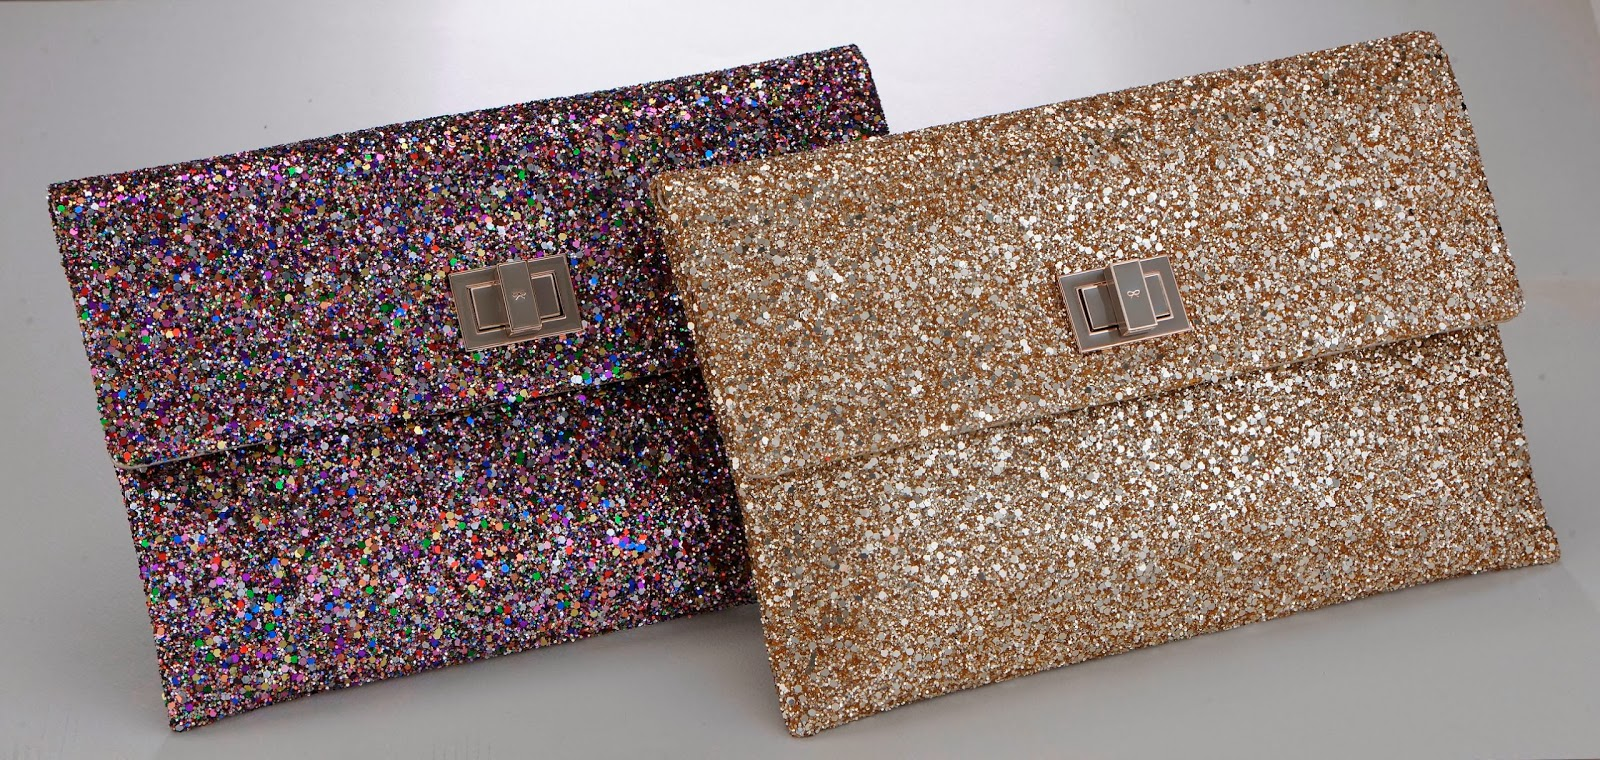 Anya Hindmarch's Limited Edition 10th Anniversary Valorie Glitter Clutch